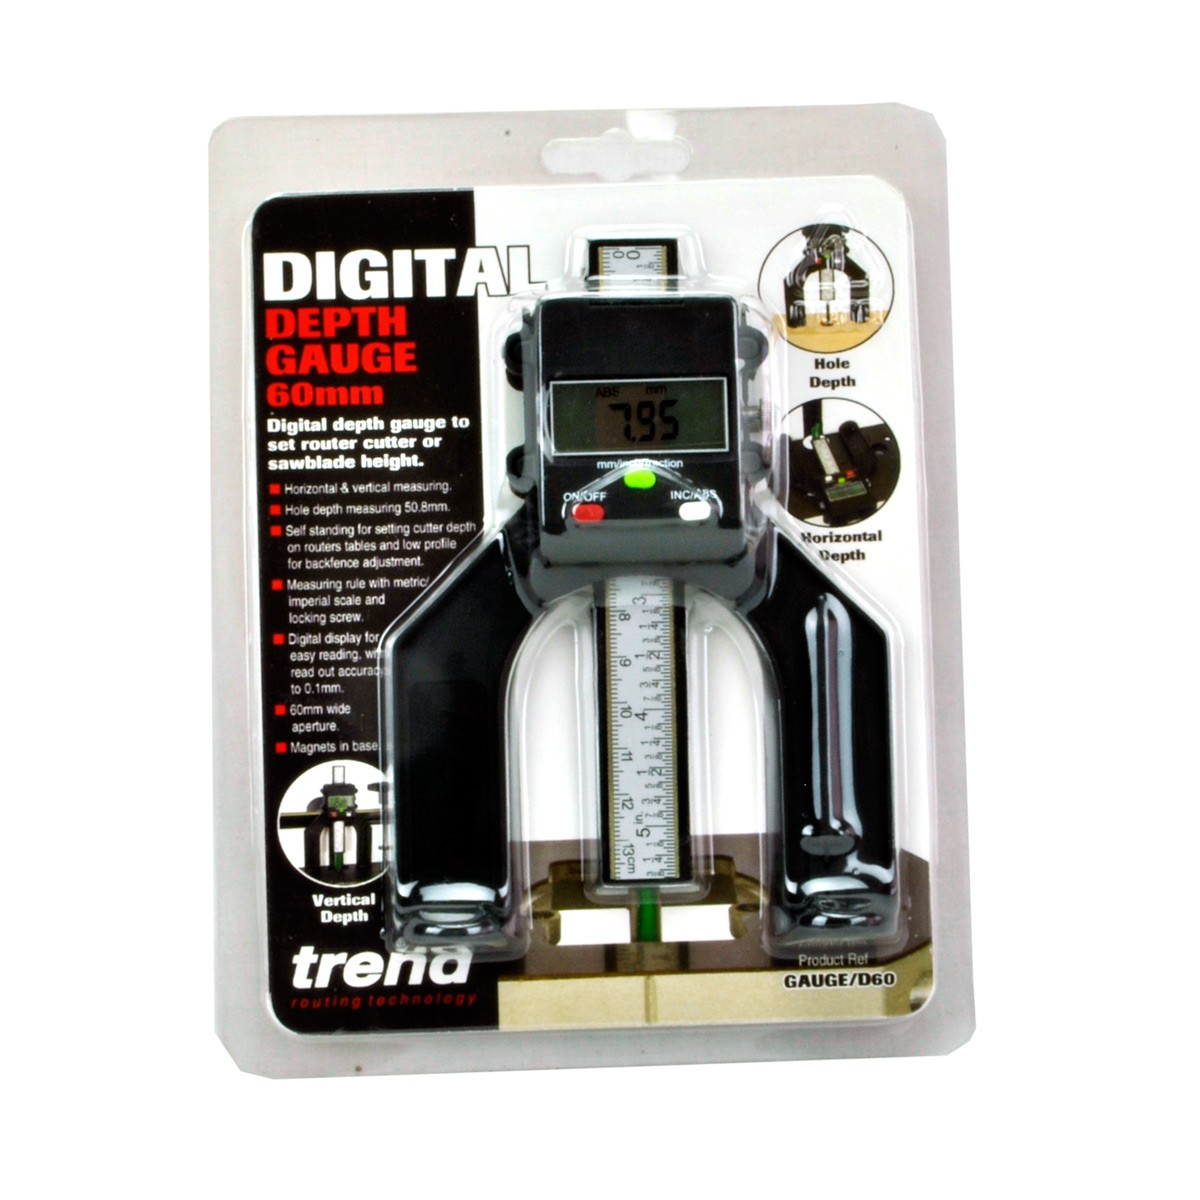 Trend gauged60 digital depth gauge for routers tables saw trend gauged60 digital depth gauge for routers tables saw benches greentooth Images